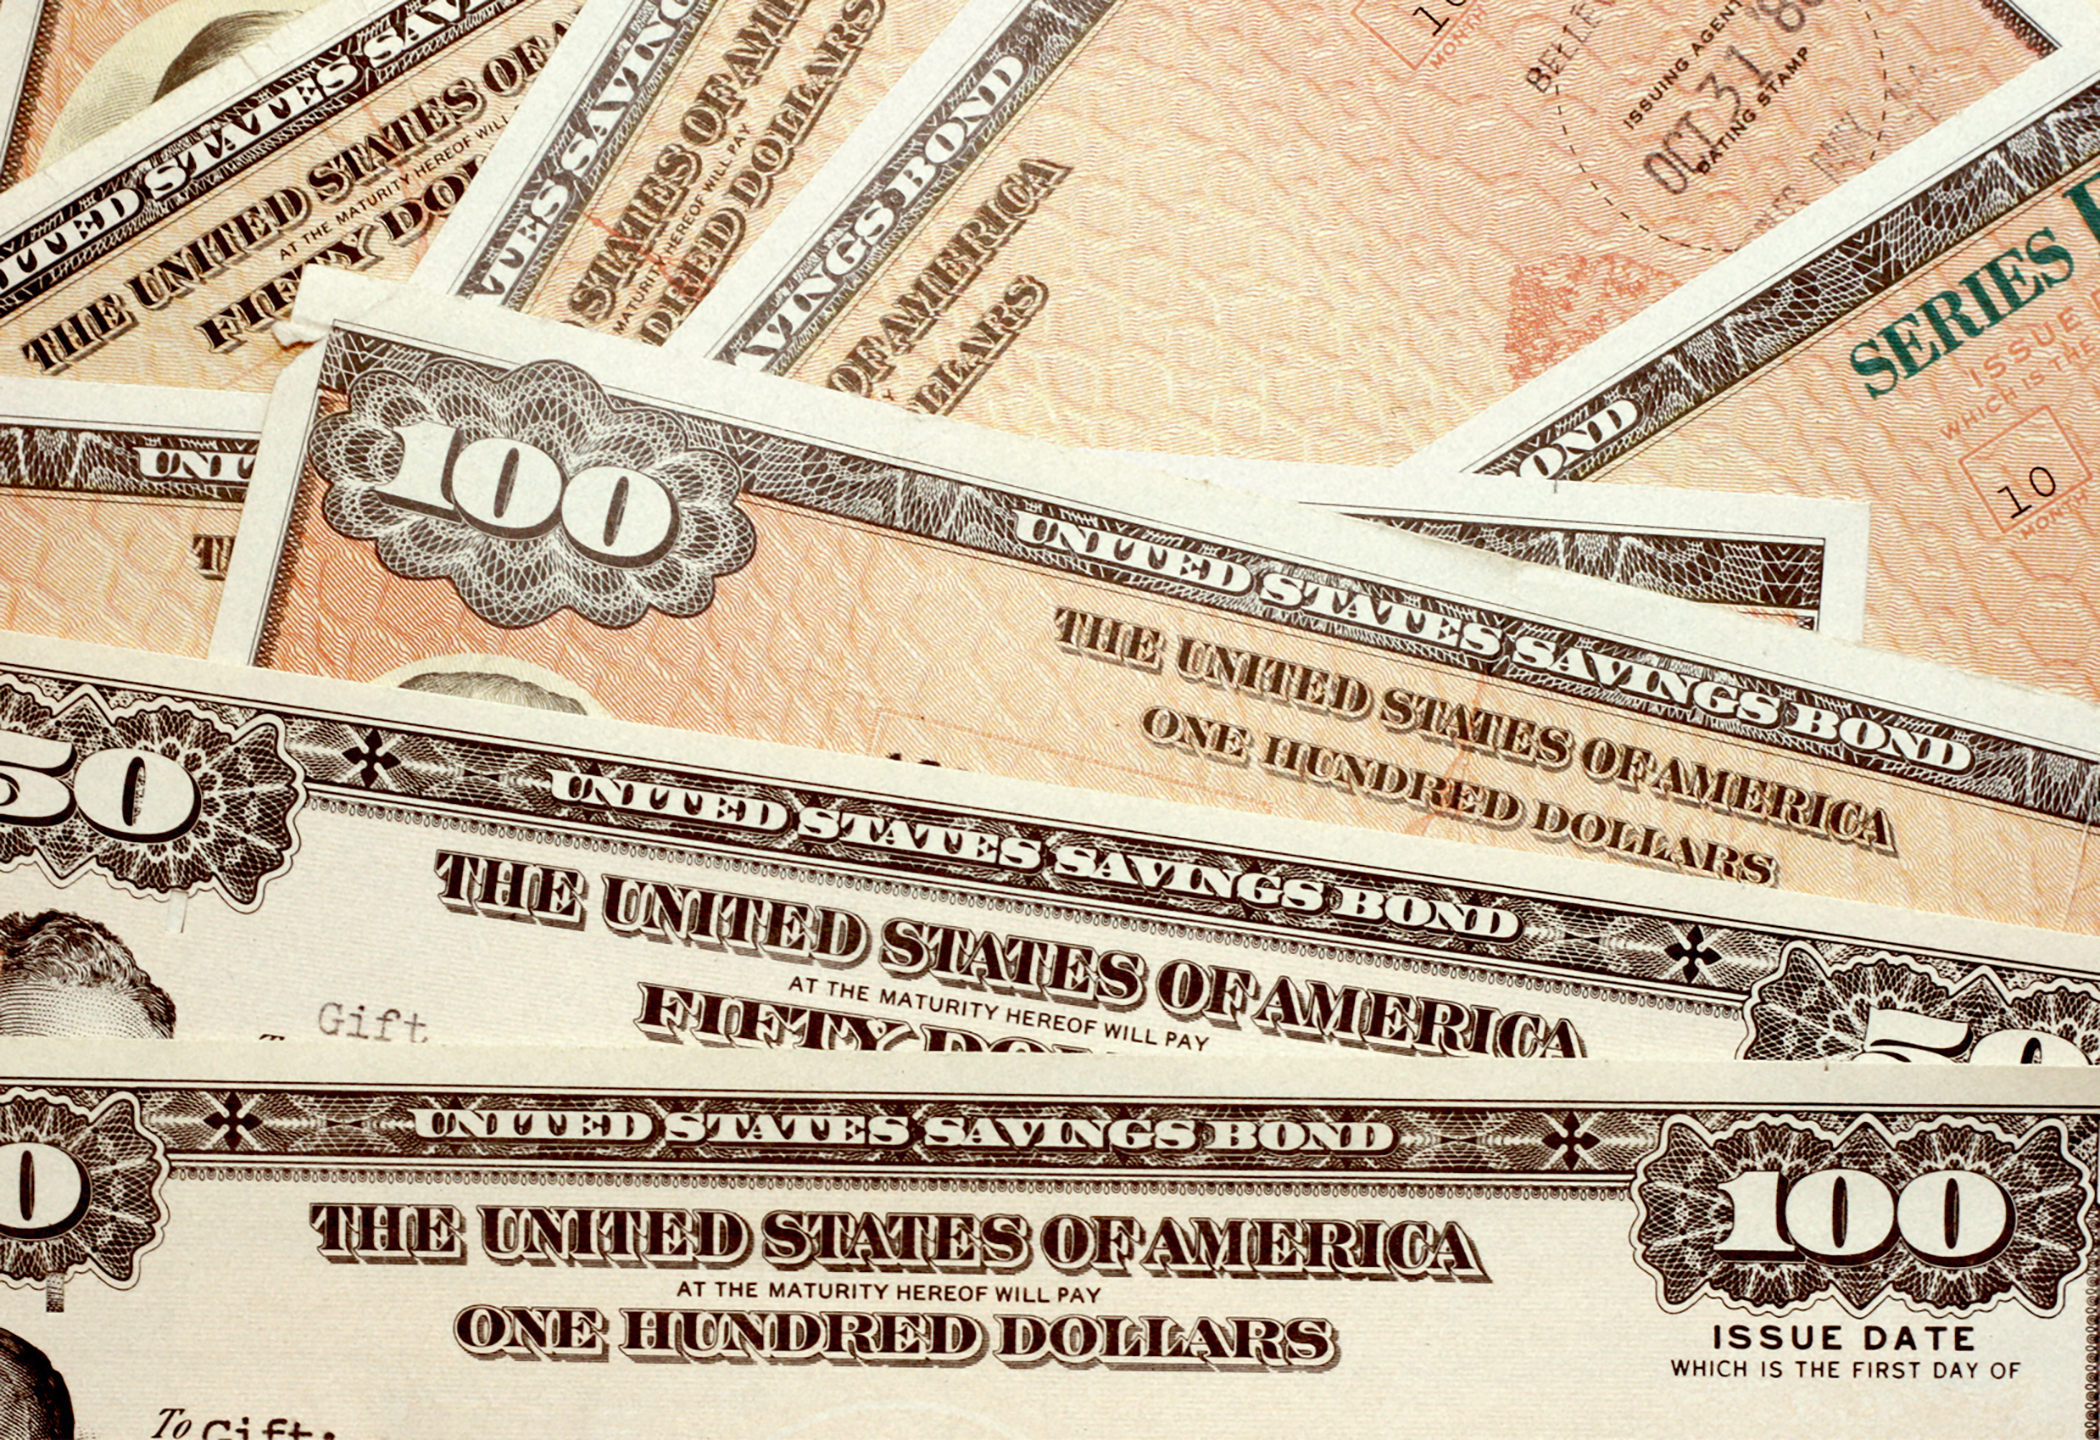 I Lost a Paper Savings Bond. Am I Out of Luck?